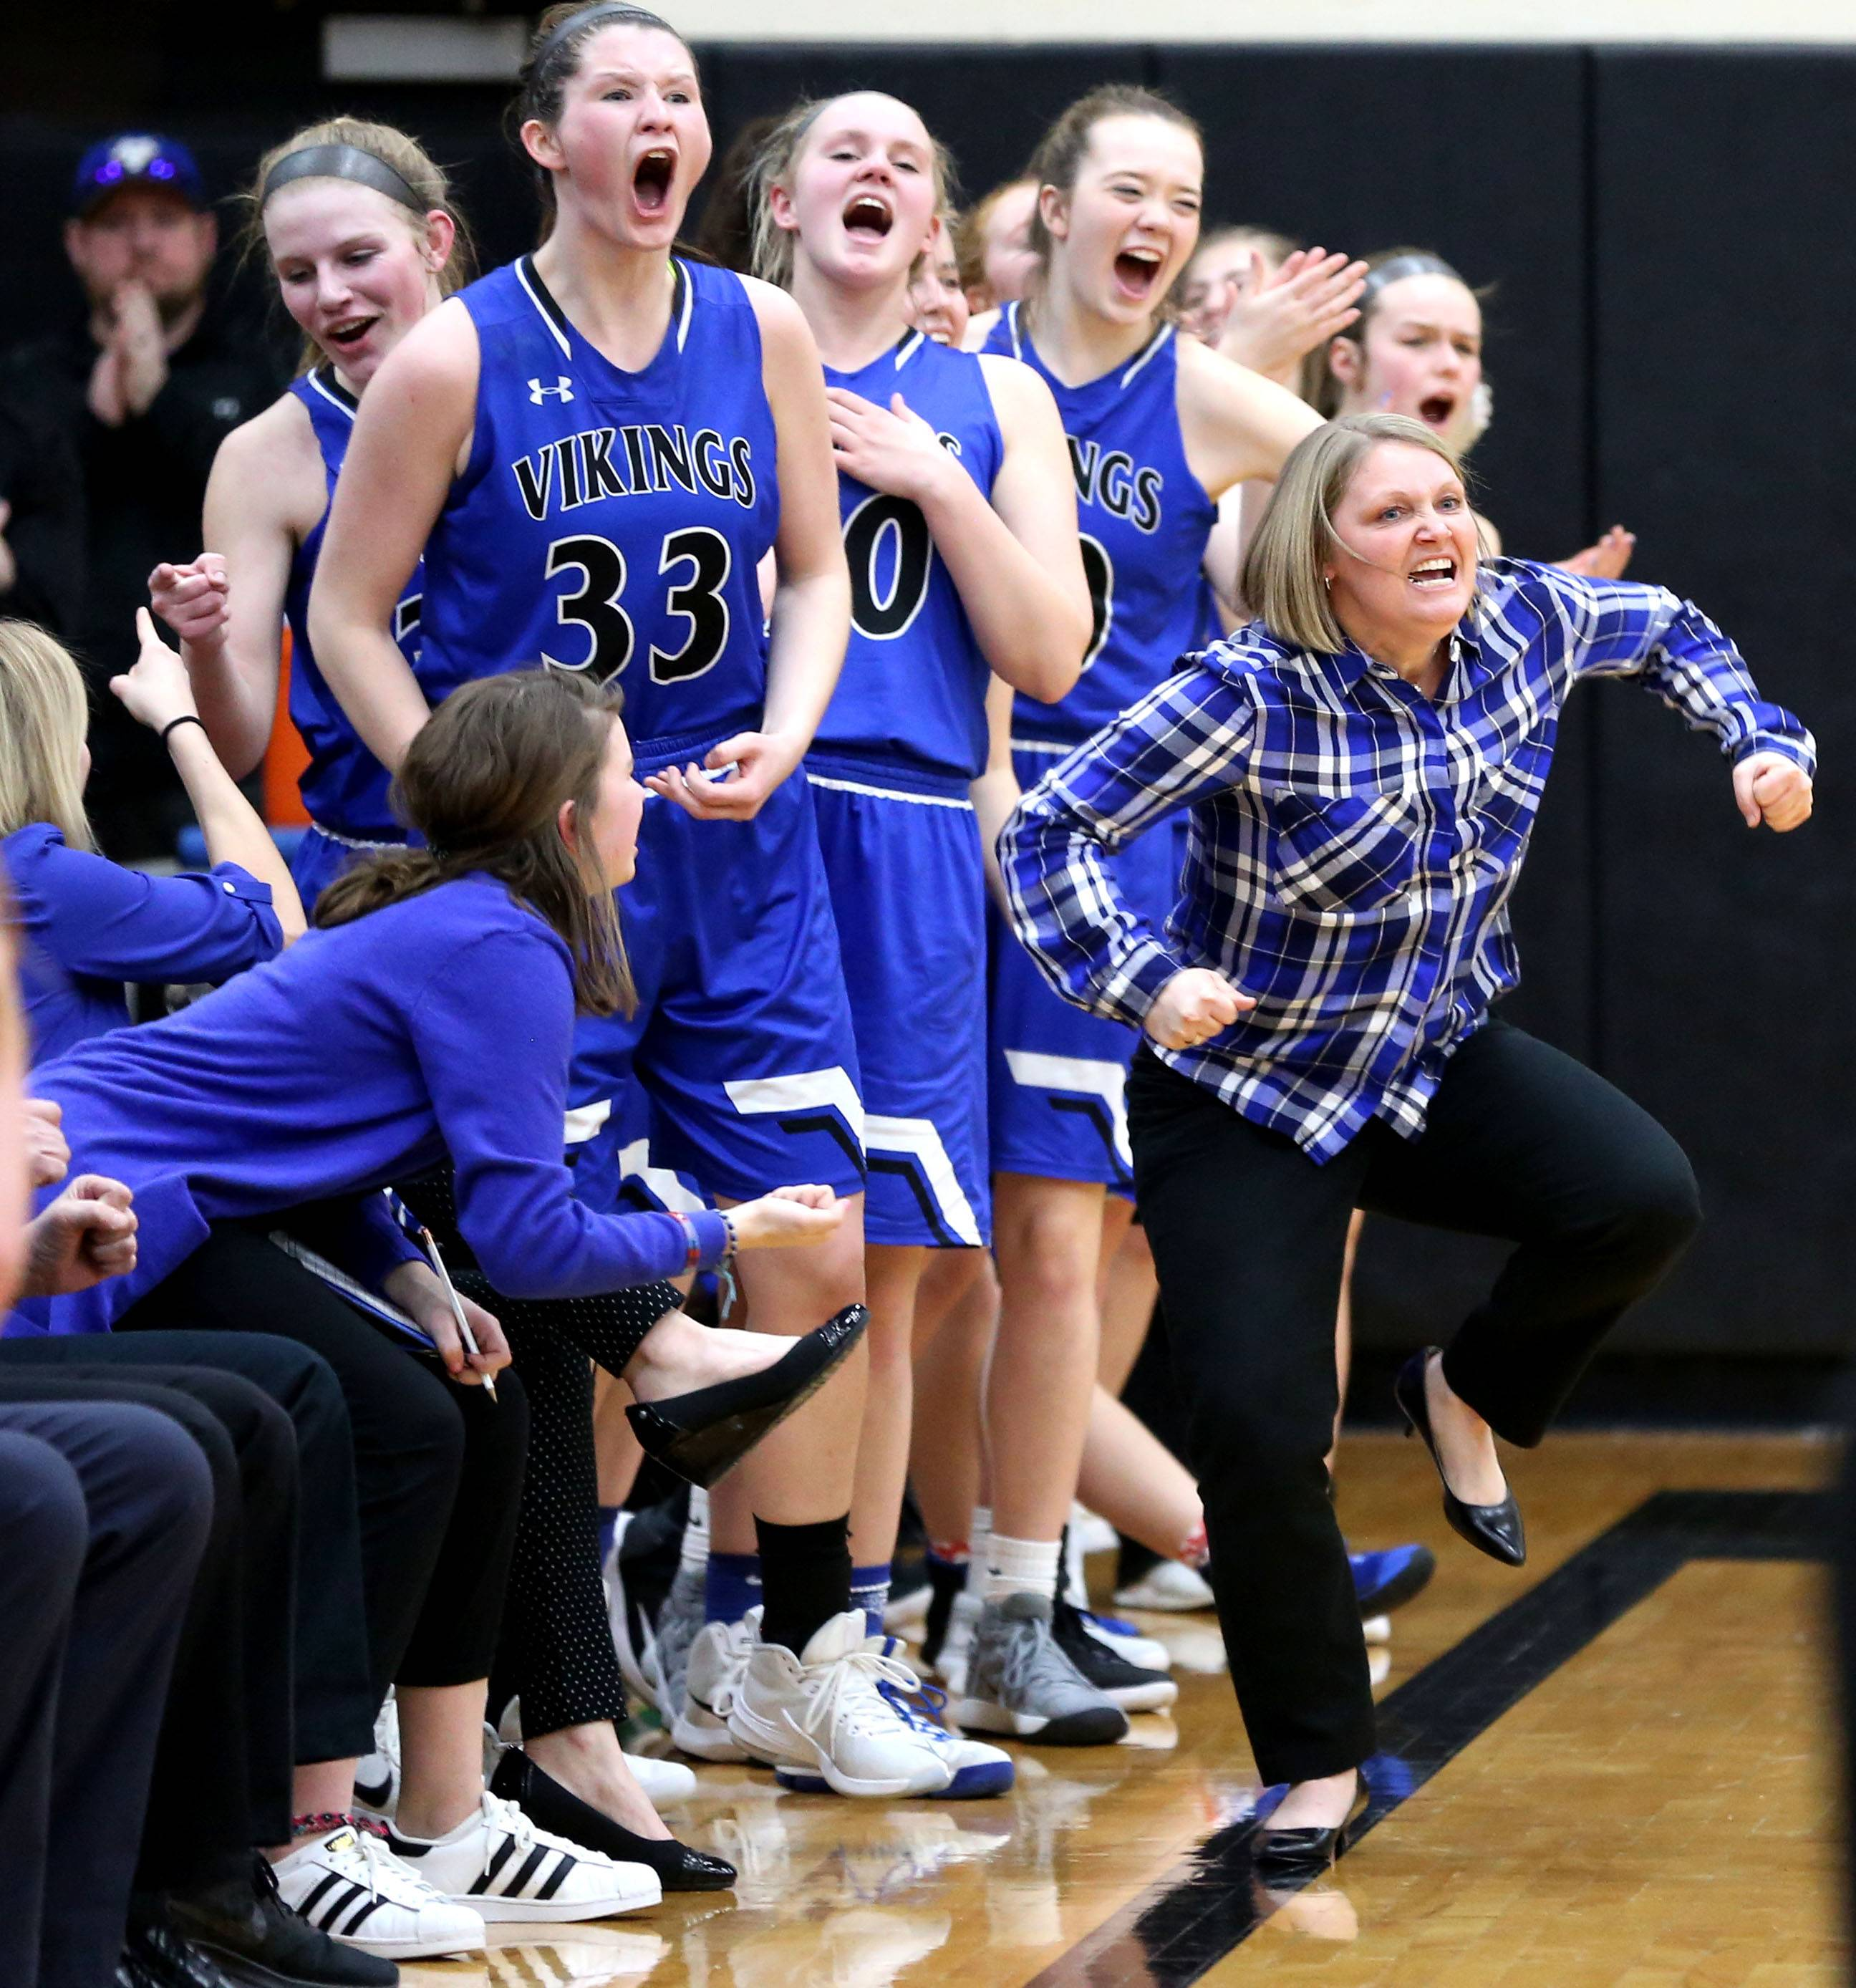 The Vikings of Geneva celebrate a supersectional girls basketball win over Rockford Boylan at Streamwood High School Monday night. Head coach Sarah Meadows gets revved up in the first half.